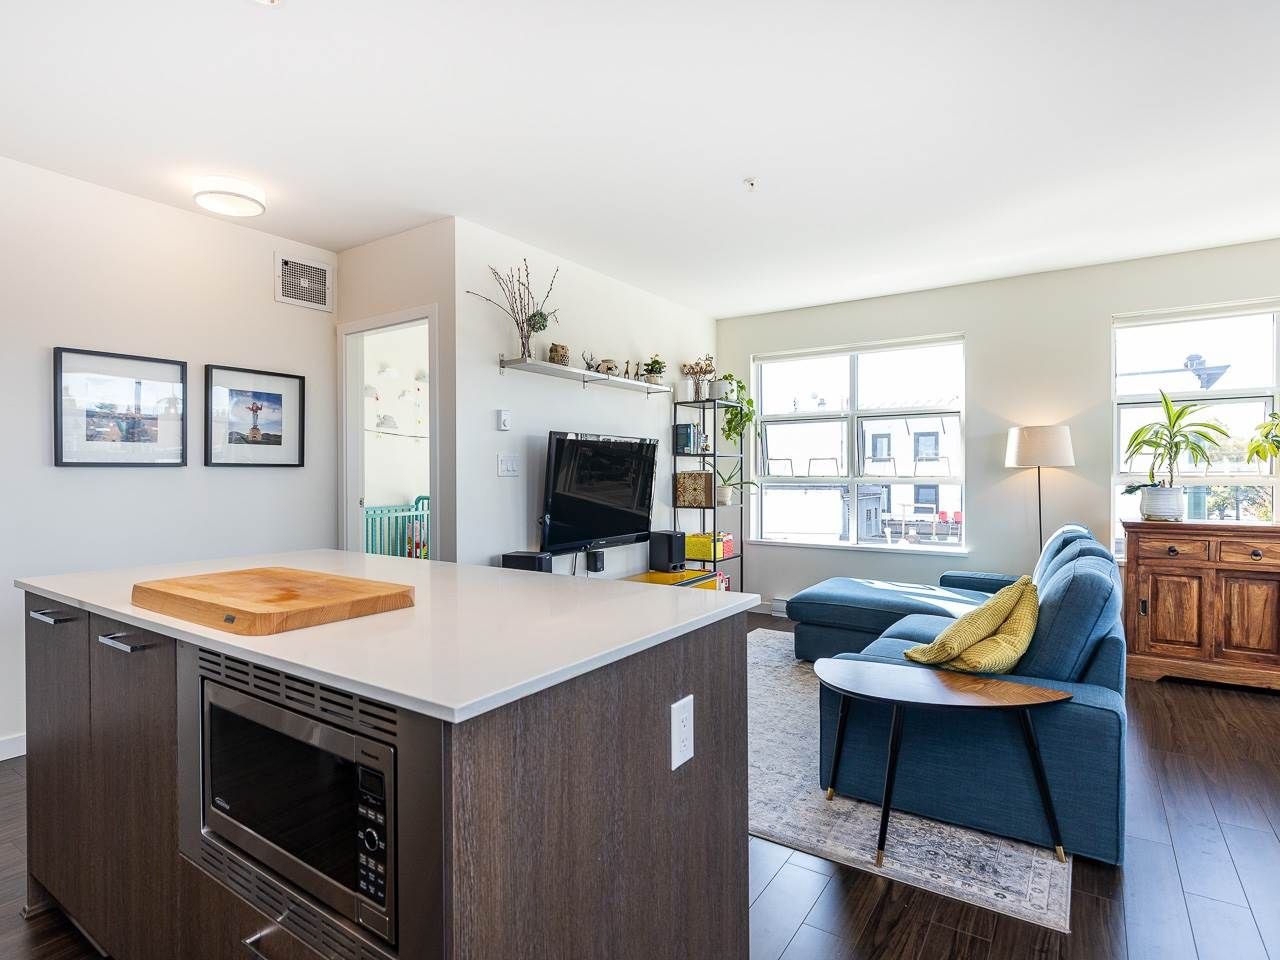 Photo 7: Photos: 306 202 E 24TH AVENUE in Vancouver: Main Condo for sale (Vancouver East)  : MLS®# R2406713